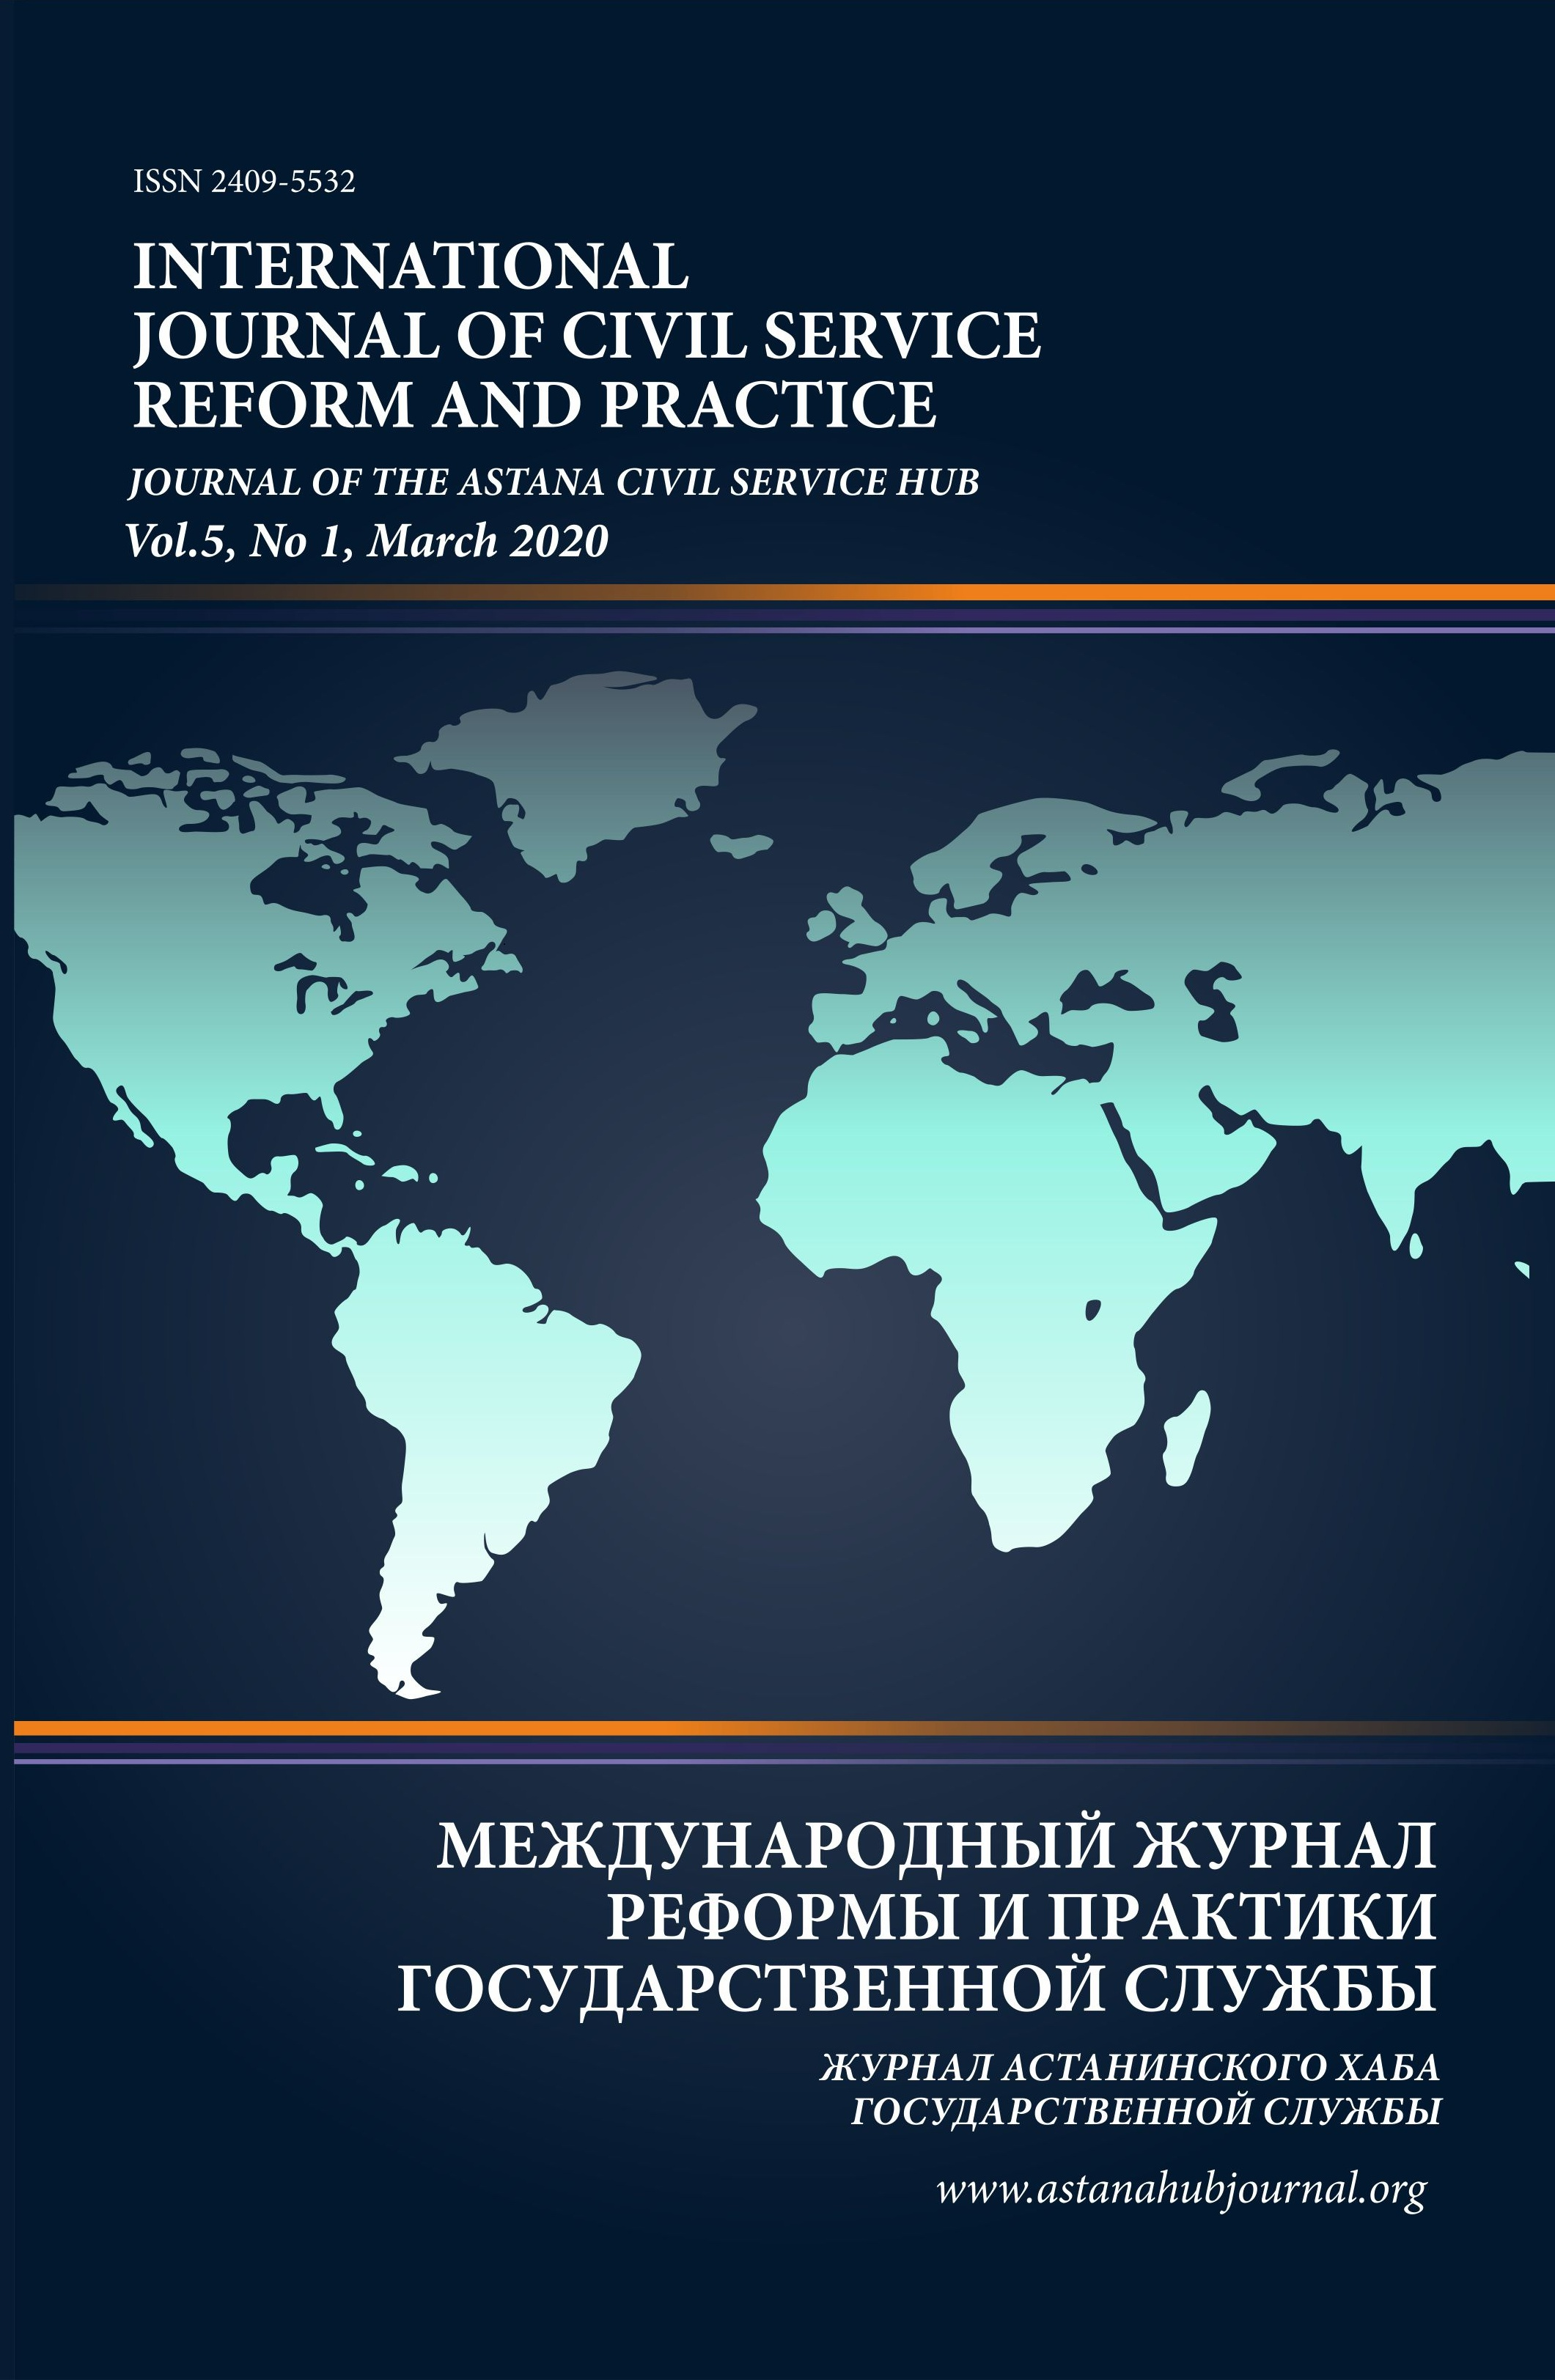 International Journal of Civil Service Reform and Practice (Vol. 5, No. 1)